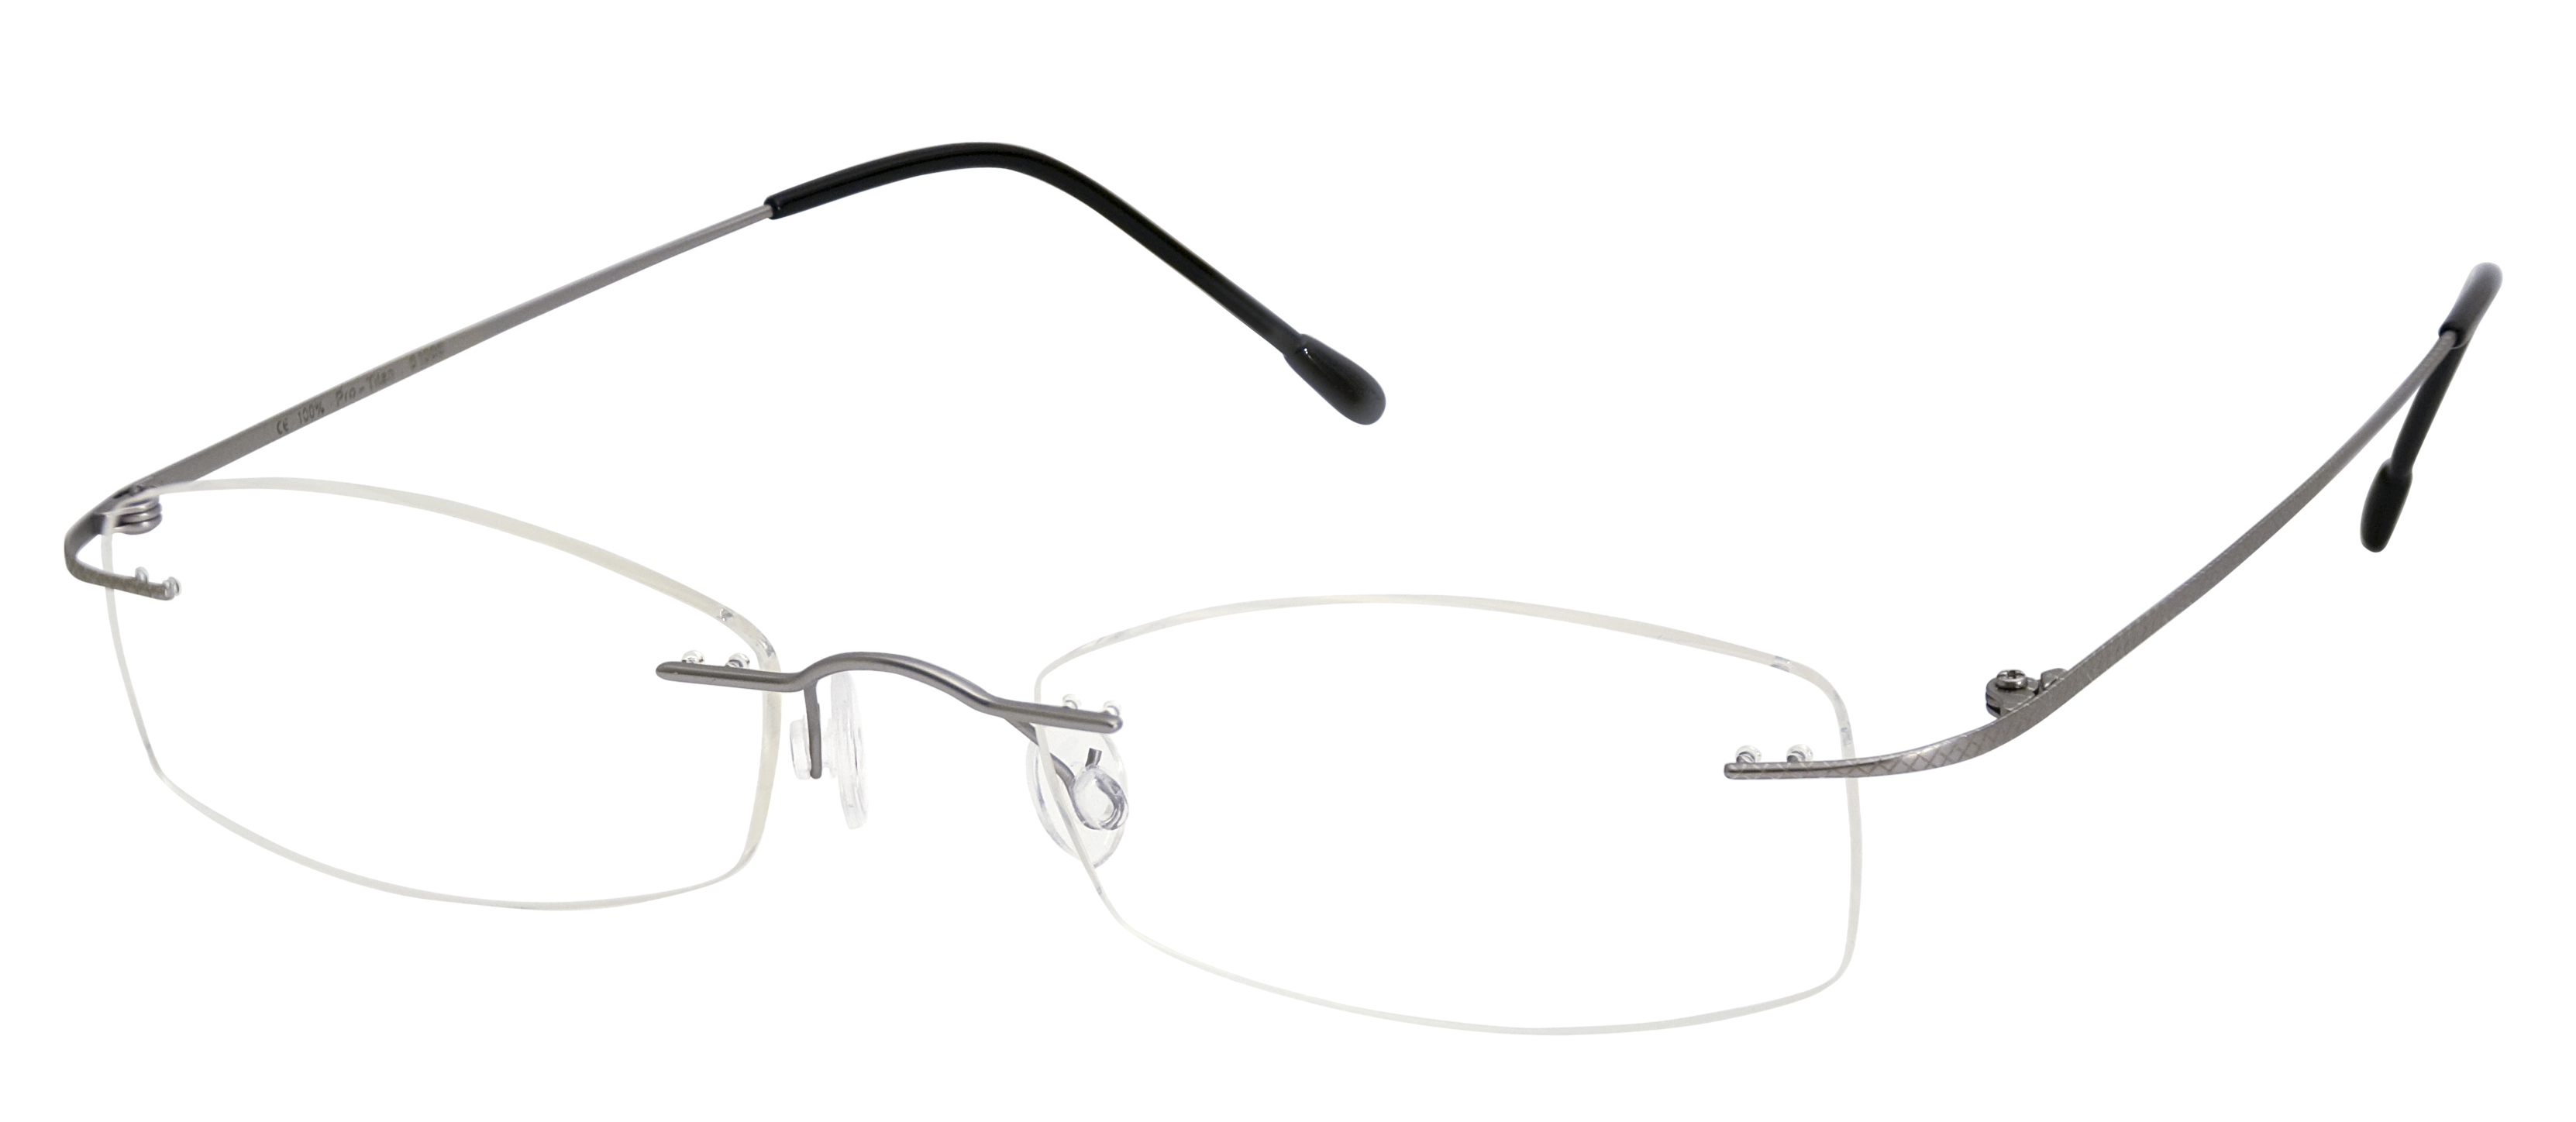 29d3ab8b23 Rimless eyeglasses - Wikipedia